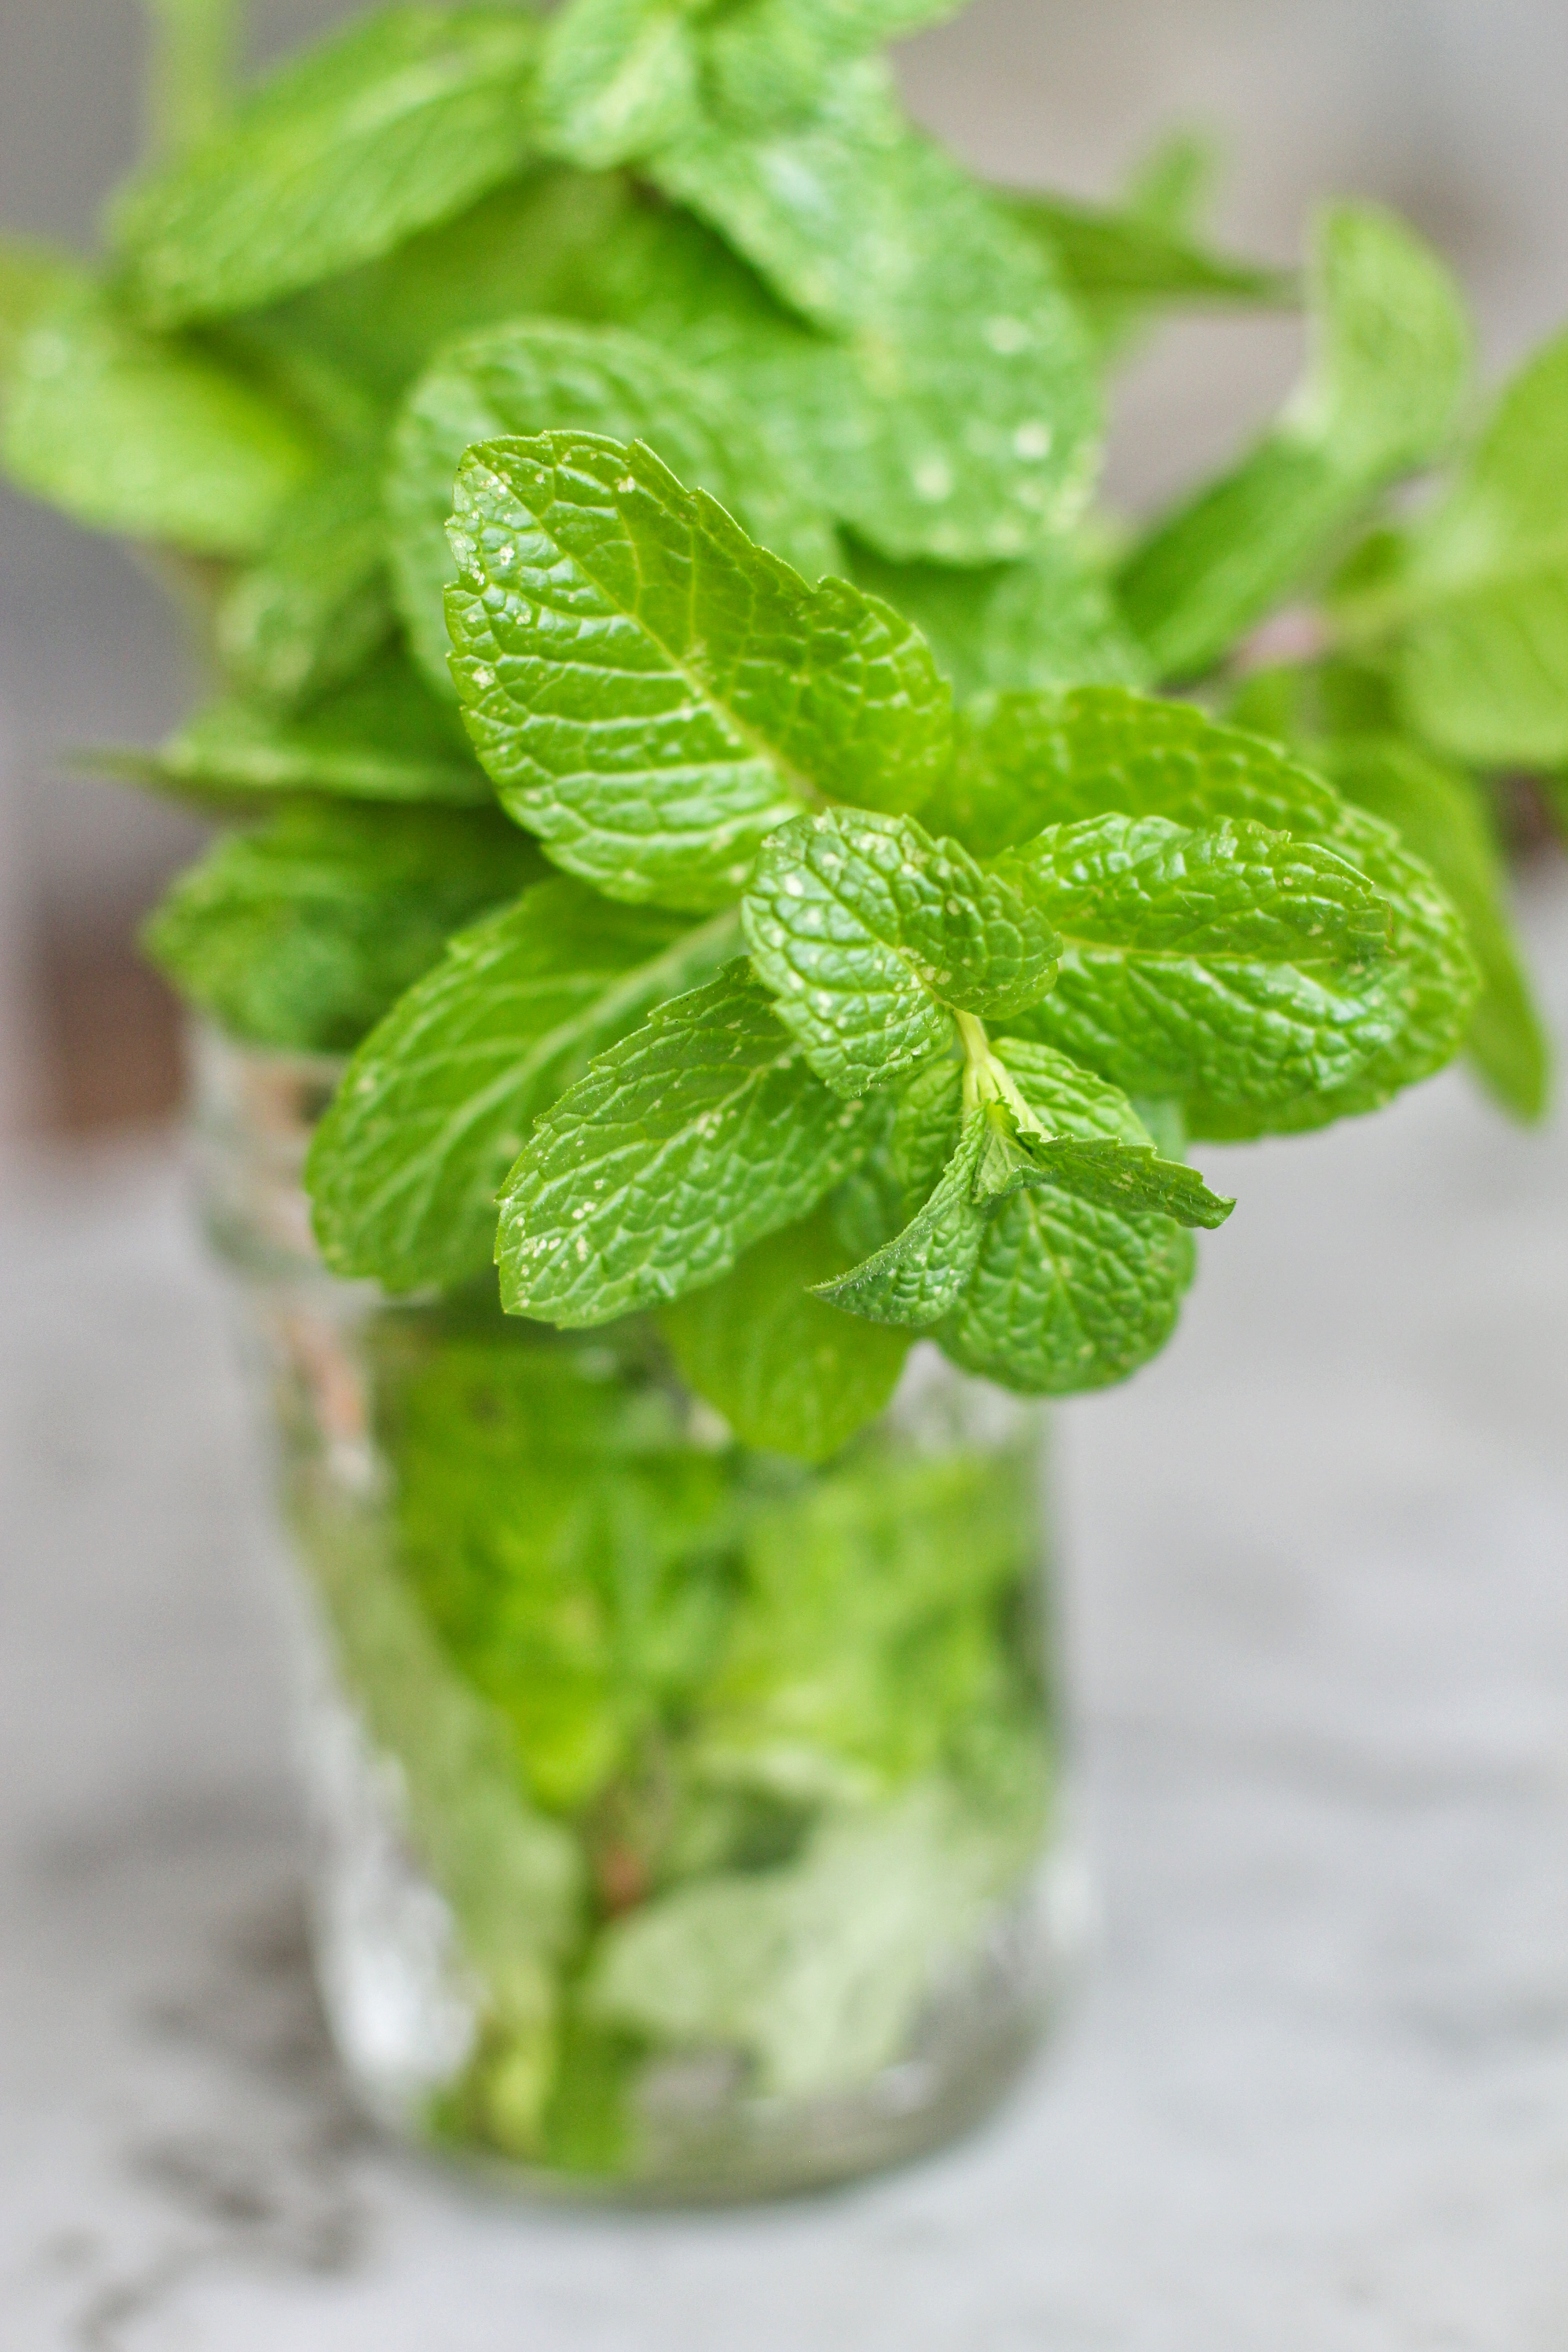 Apple Mint: The Fruity Mint - SPICEography